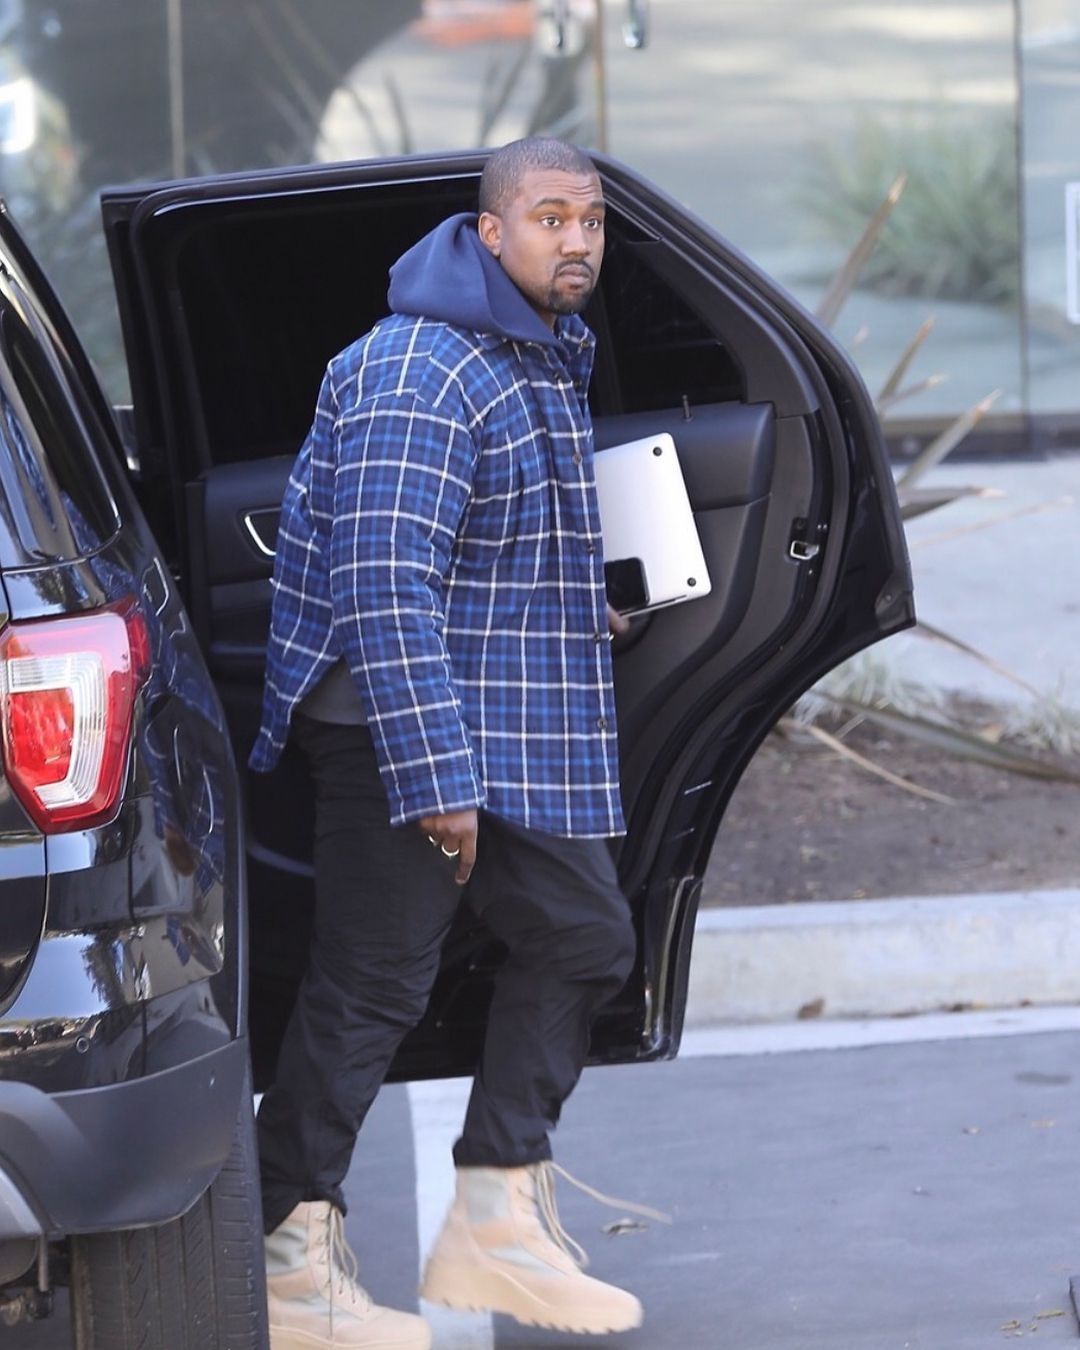 Kanye West S Best Winter Looks Where To Buy Them Kanye West Style Kanye West Style Outfits Kanye West Outfits